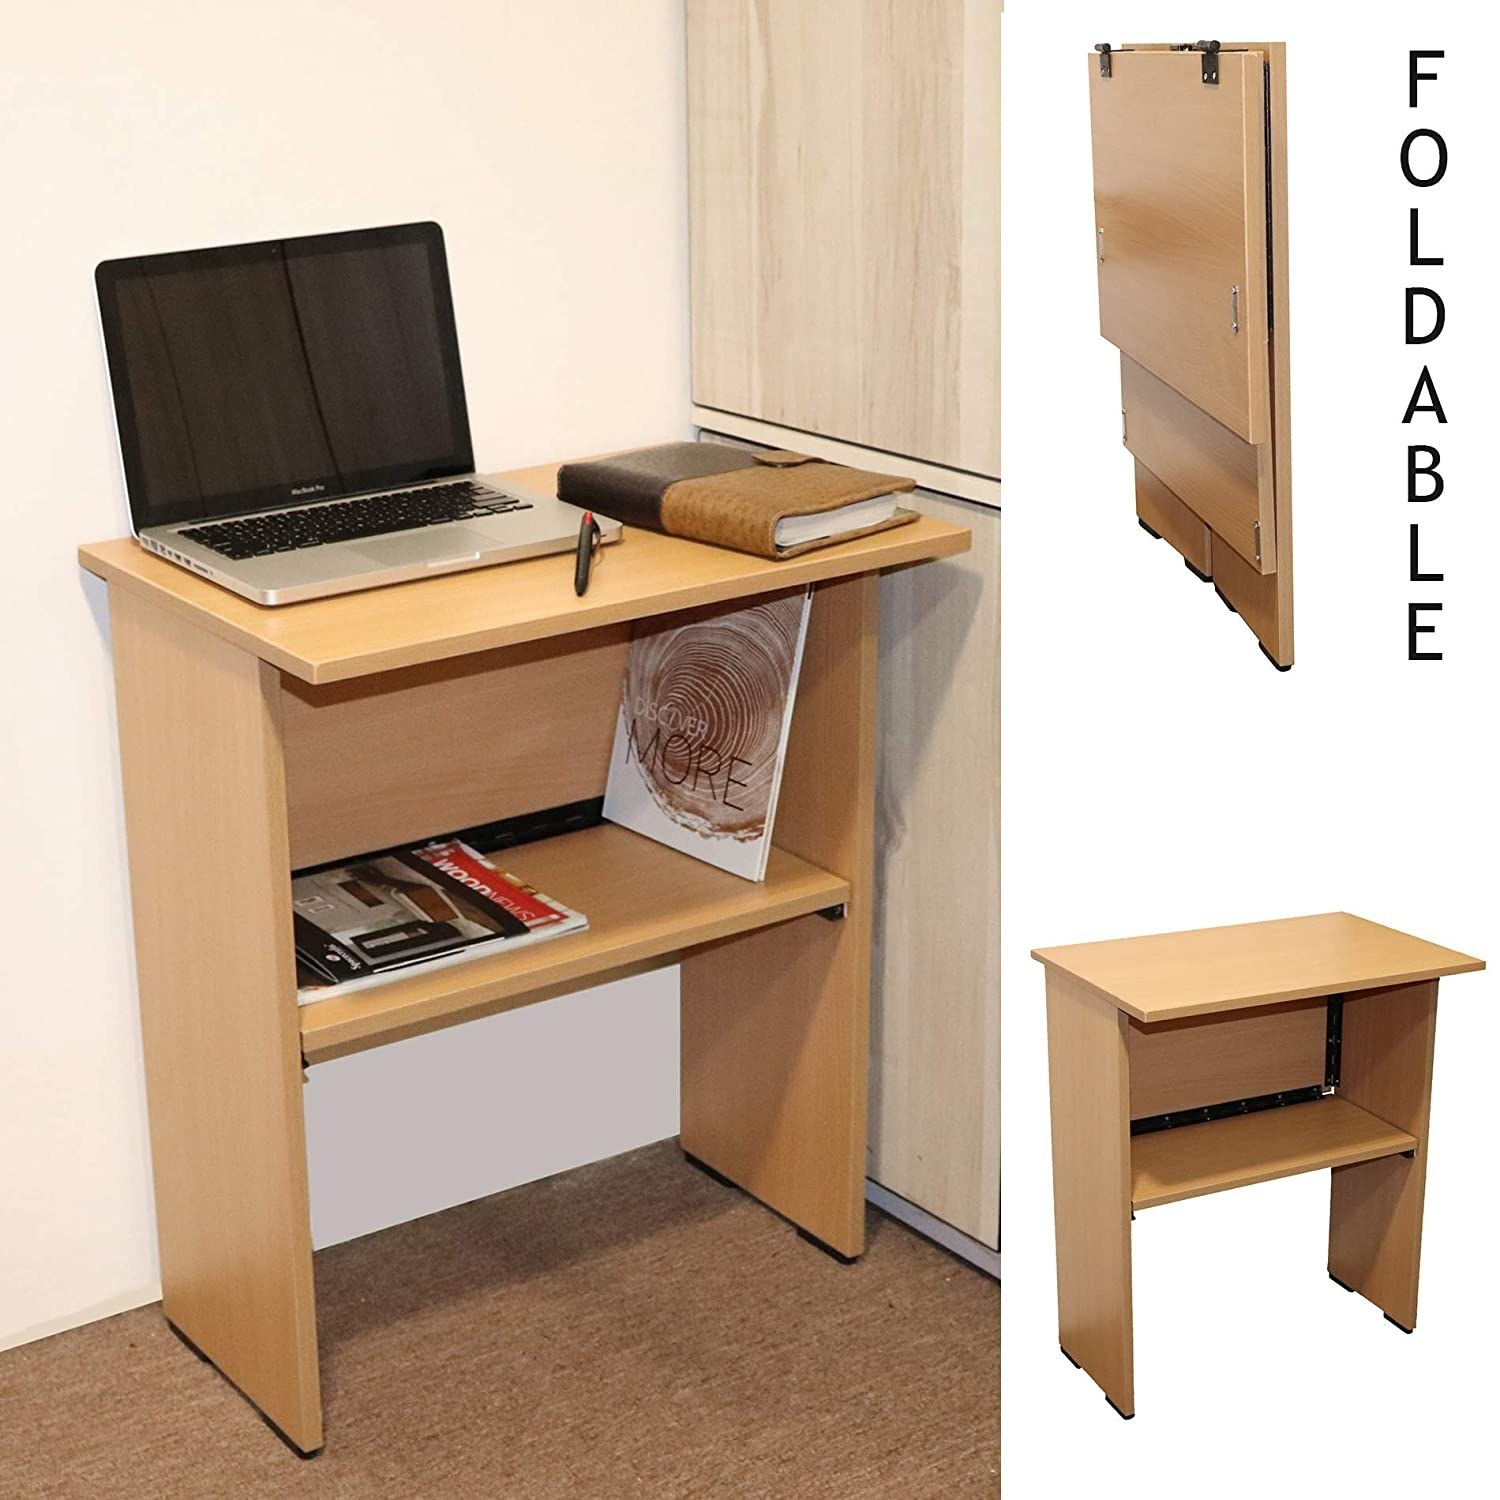 A wooden desk with storage space and a laptop